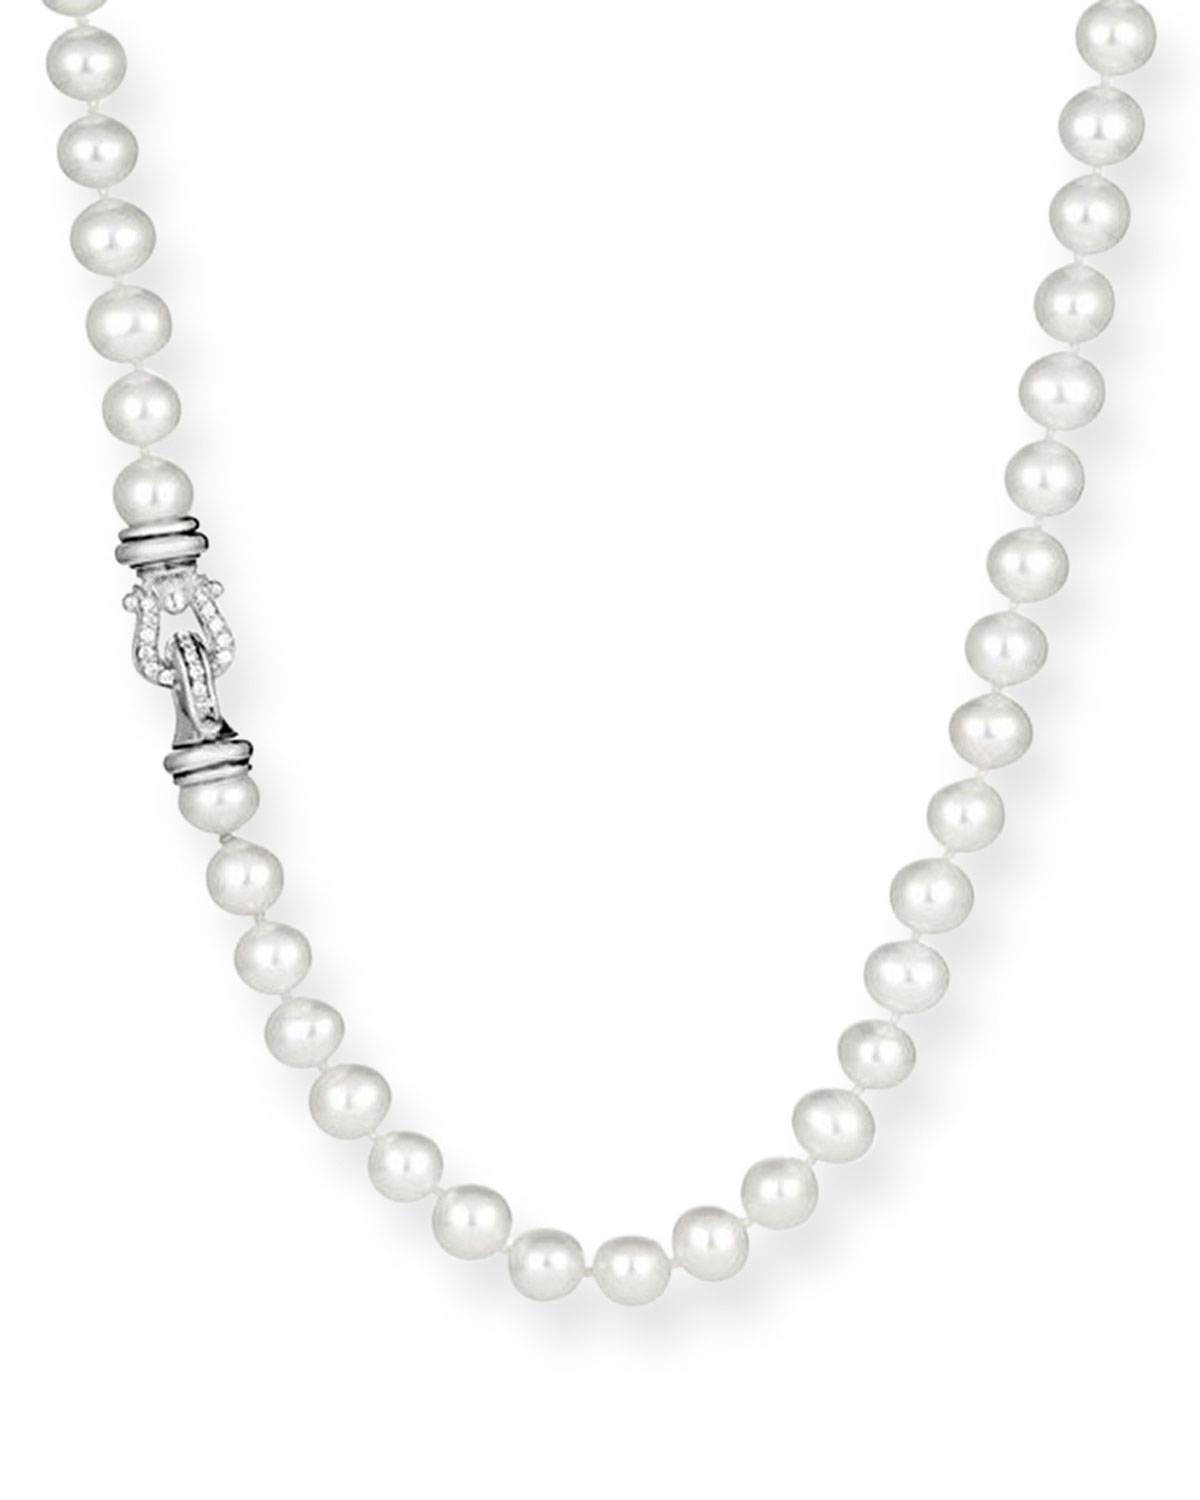 Pearl Necklace with Diamonds, 36